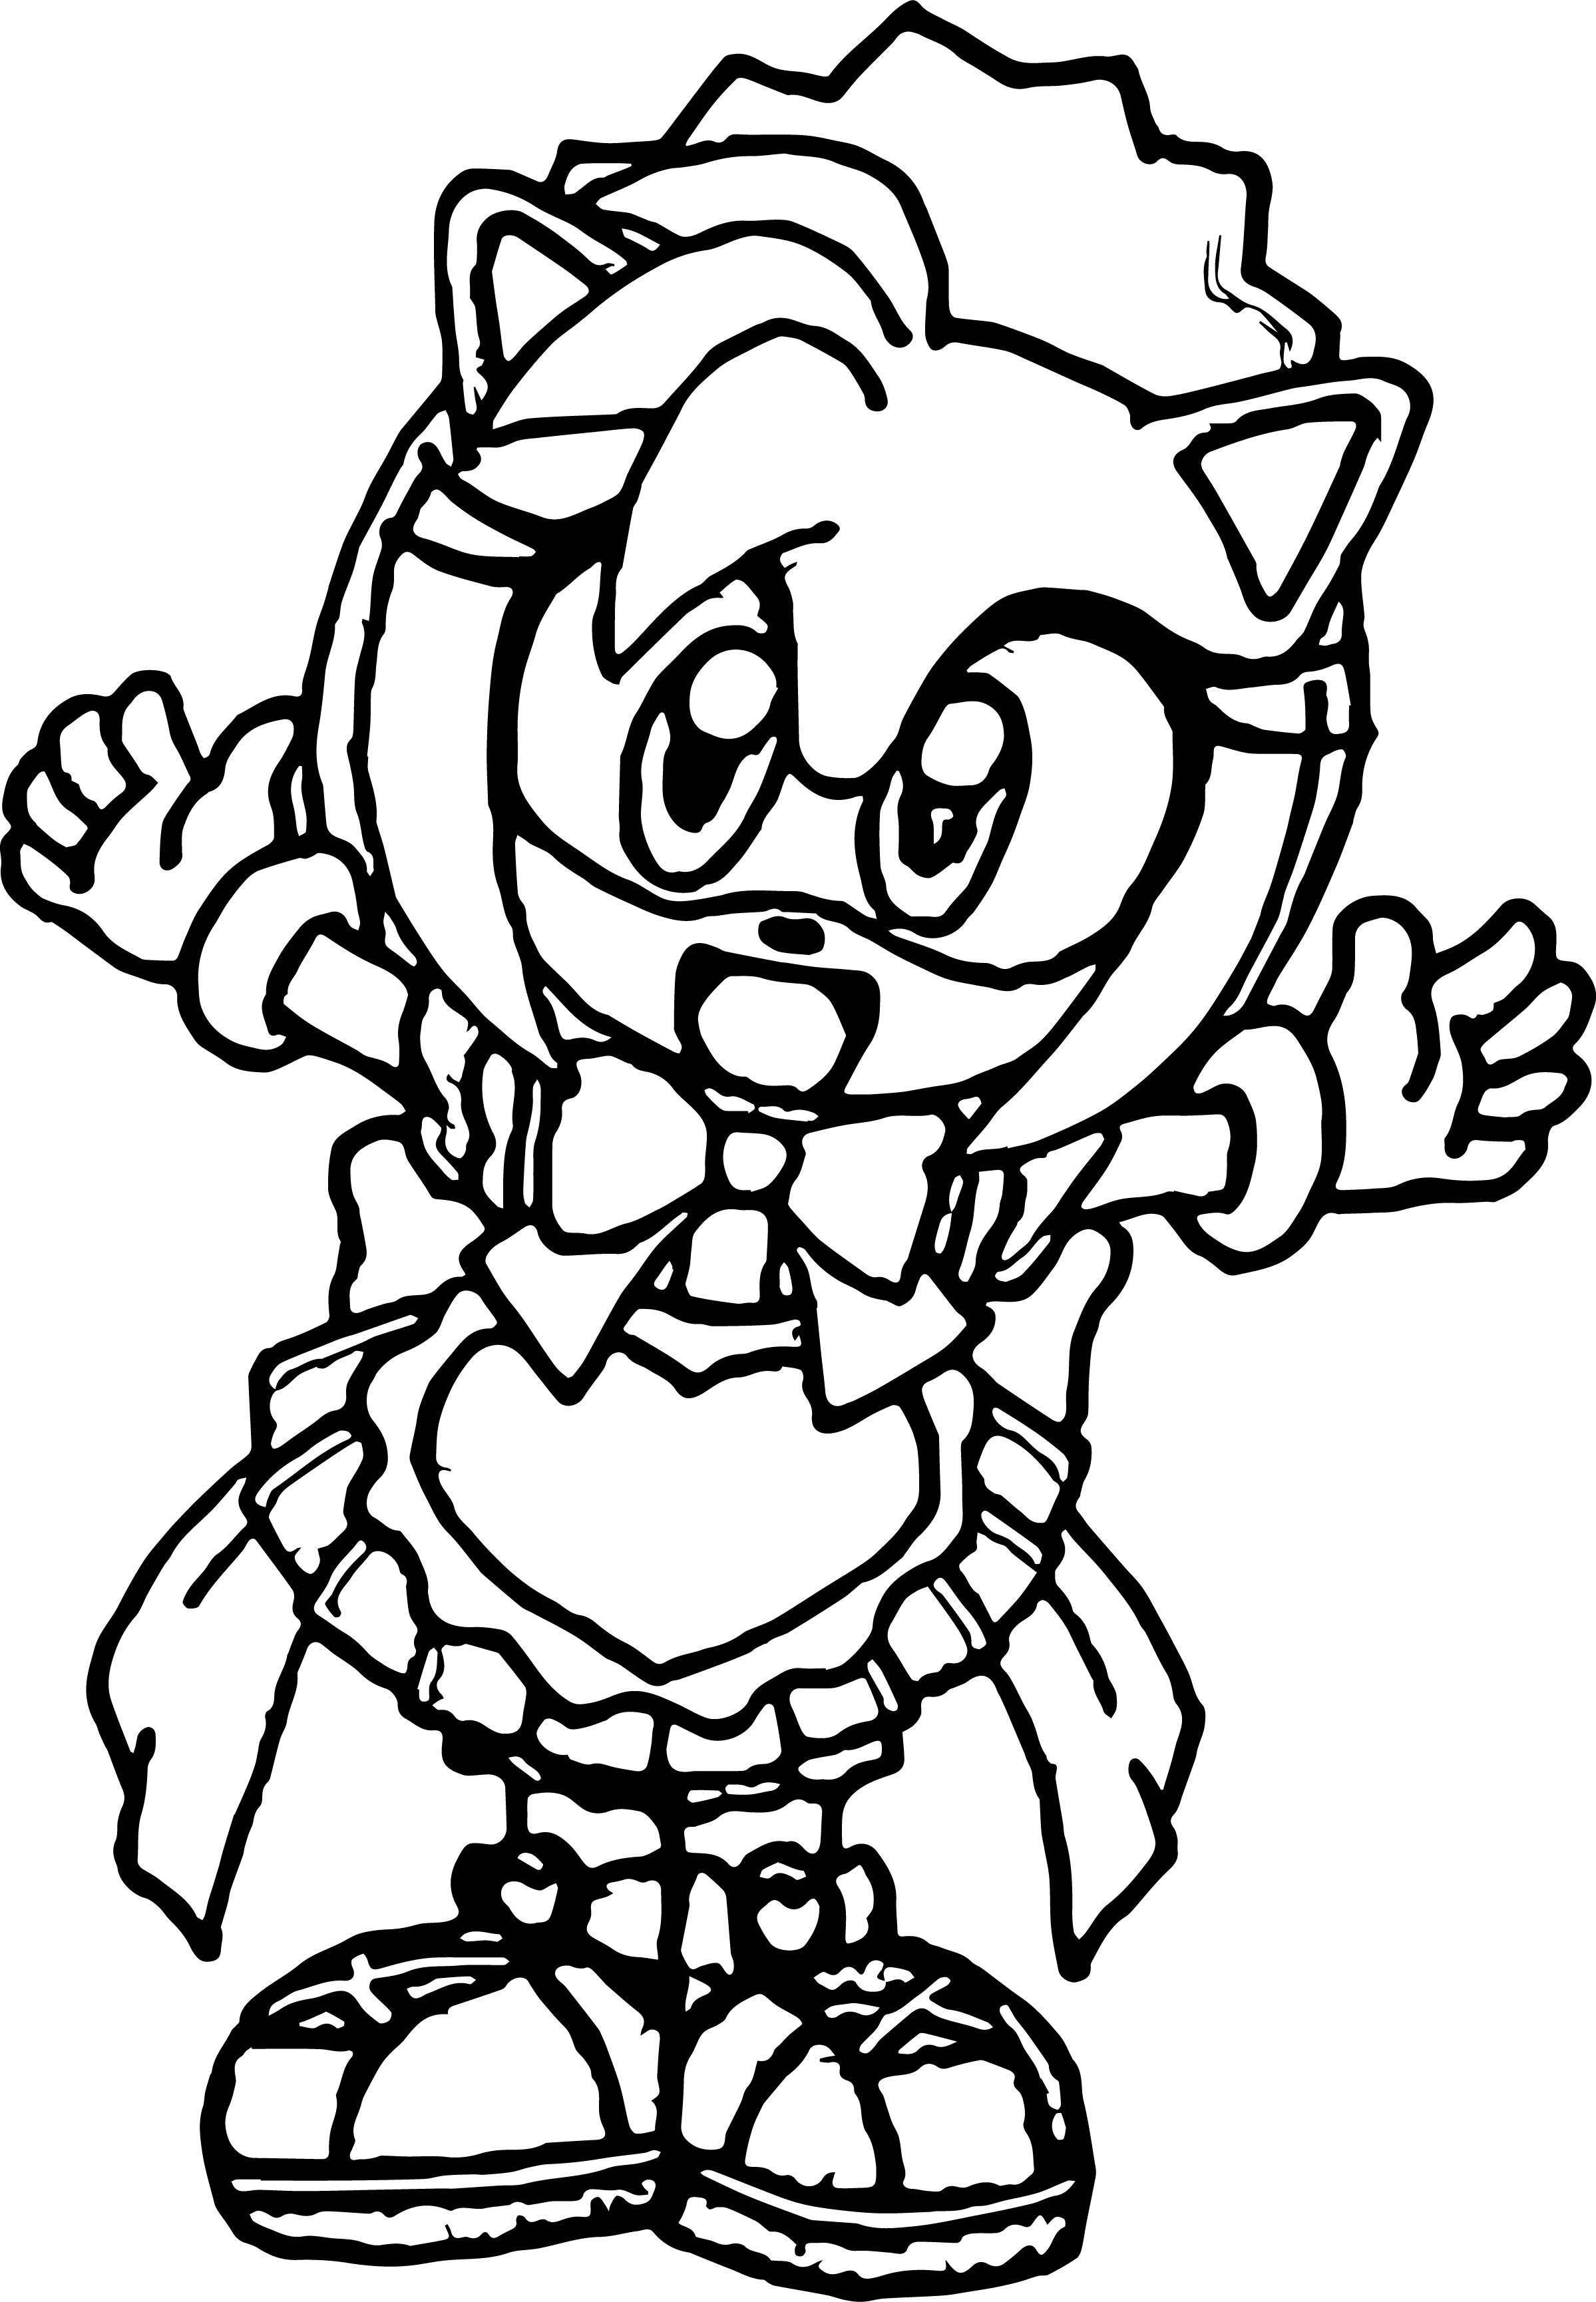 Small Kid Amy Rose Coloring Page | Wecoloringpage.com